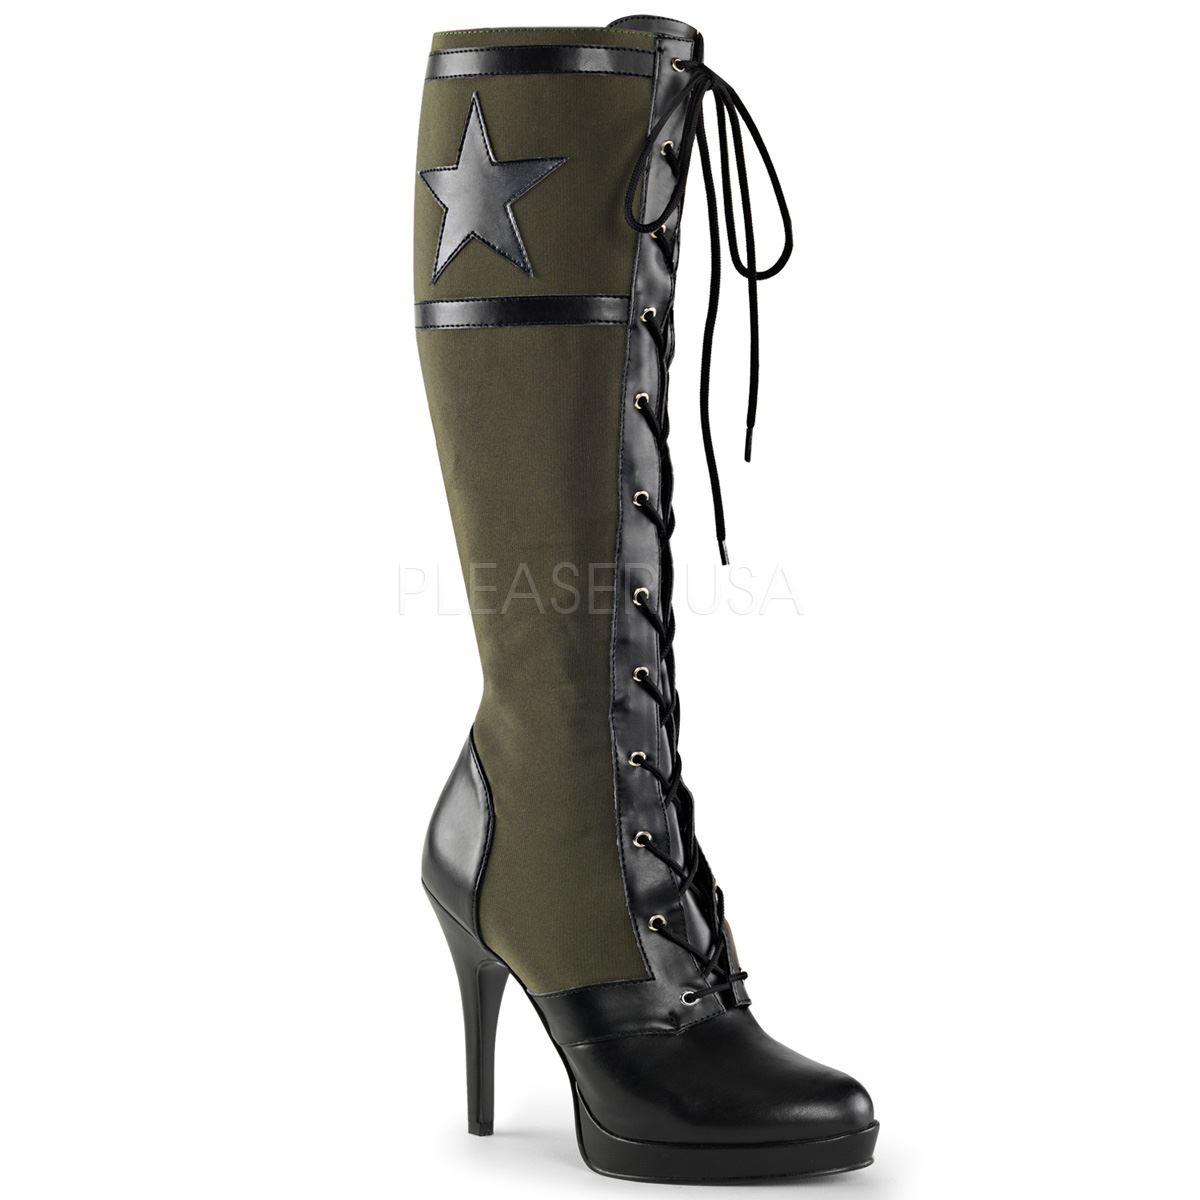 Grandes zapatos con descuento Funtasma ARENA-2022 Front Lace Up Knee High Military Boot Side Zip Khaki Green